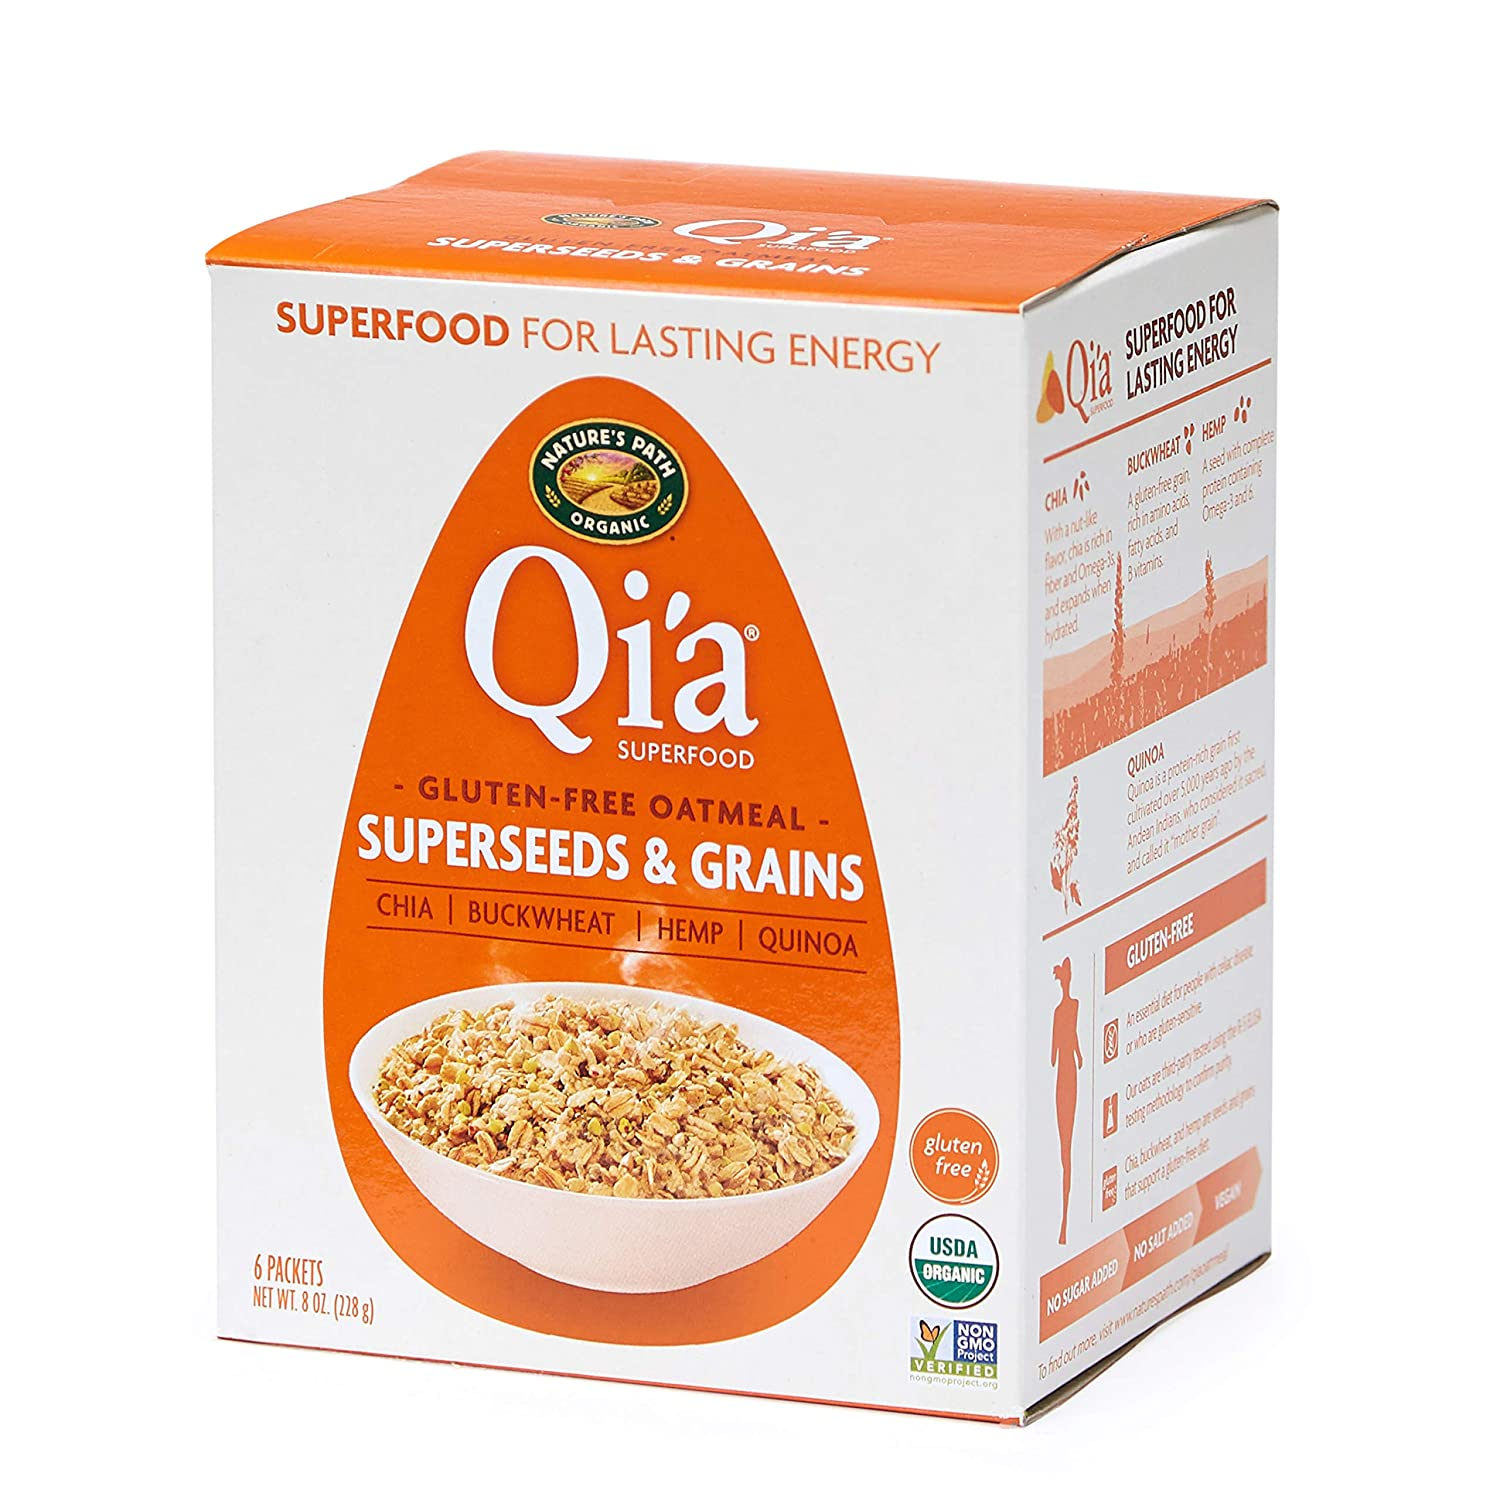 Nature's Path Qi'a Superfood Super-Seed and Grains Instant Oatmeal, Healthy, Organic & Gluten Free, 6 Pouches per Box, 8 Ounces (Pack of 6)